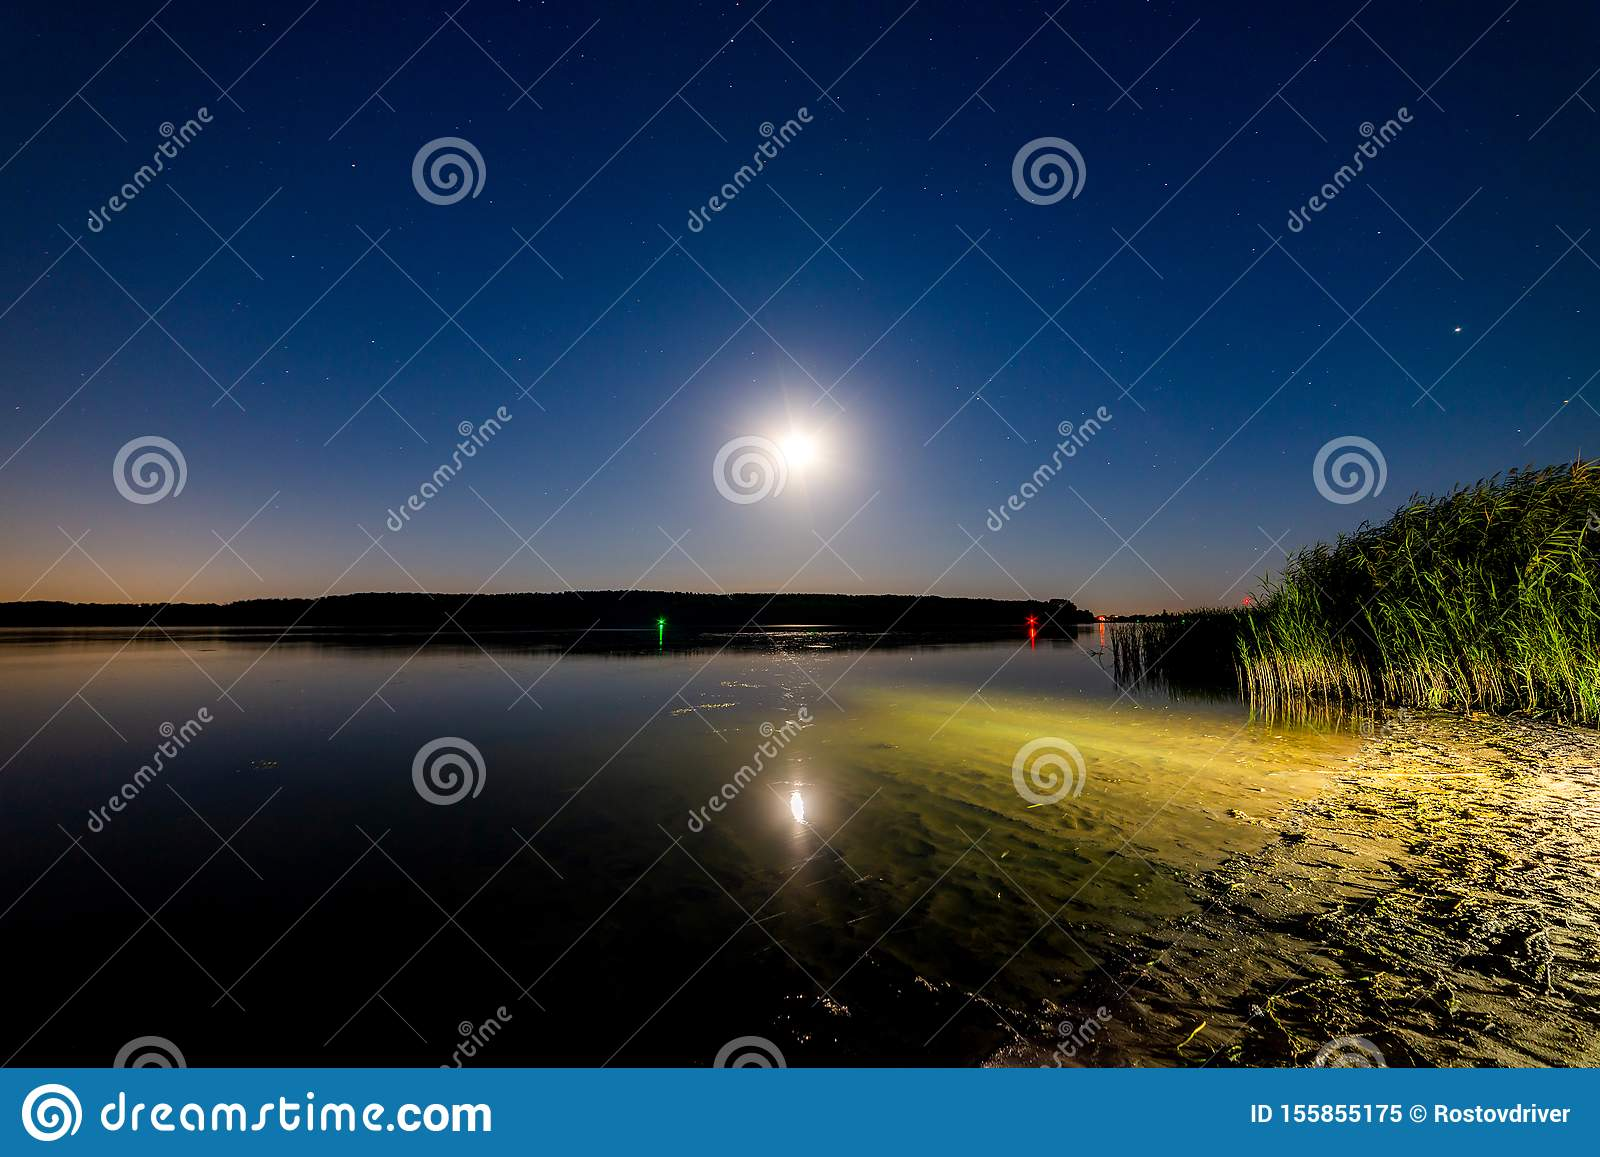 Lake or river sand shore with trees and dark blue starry sky and city light on background. Tranquil nature night landscape